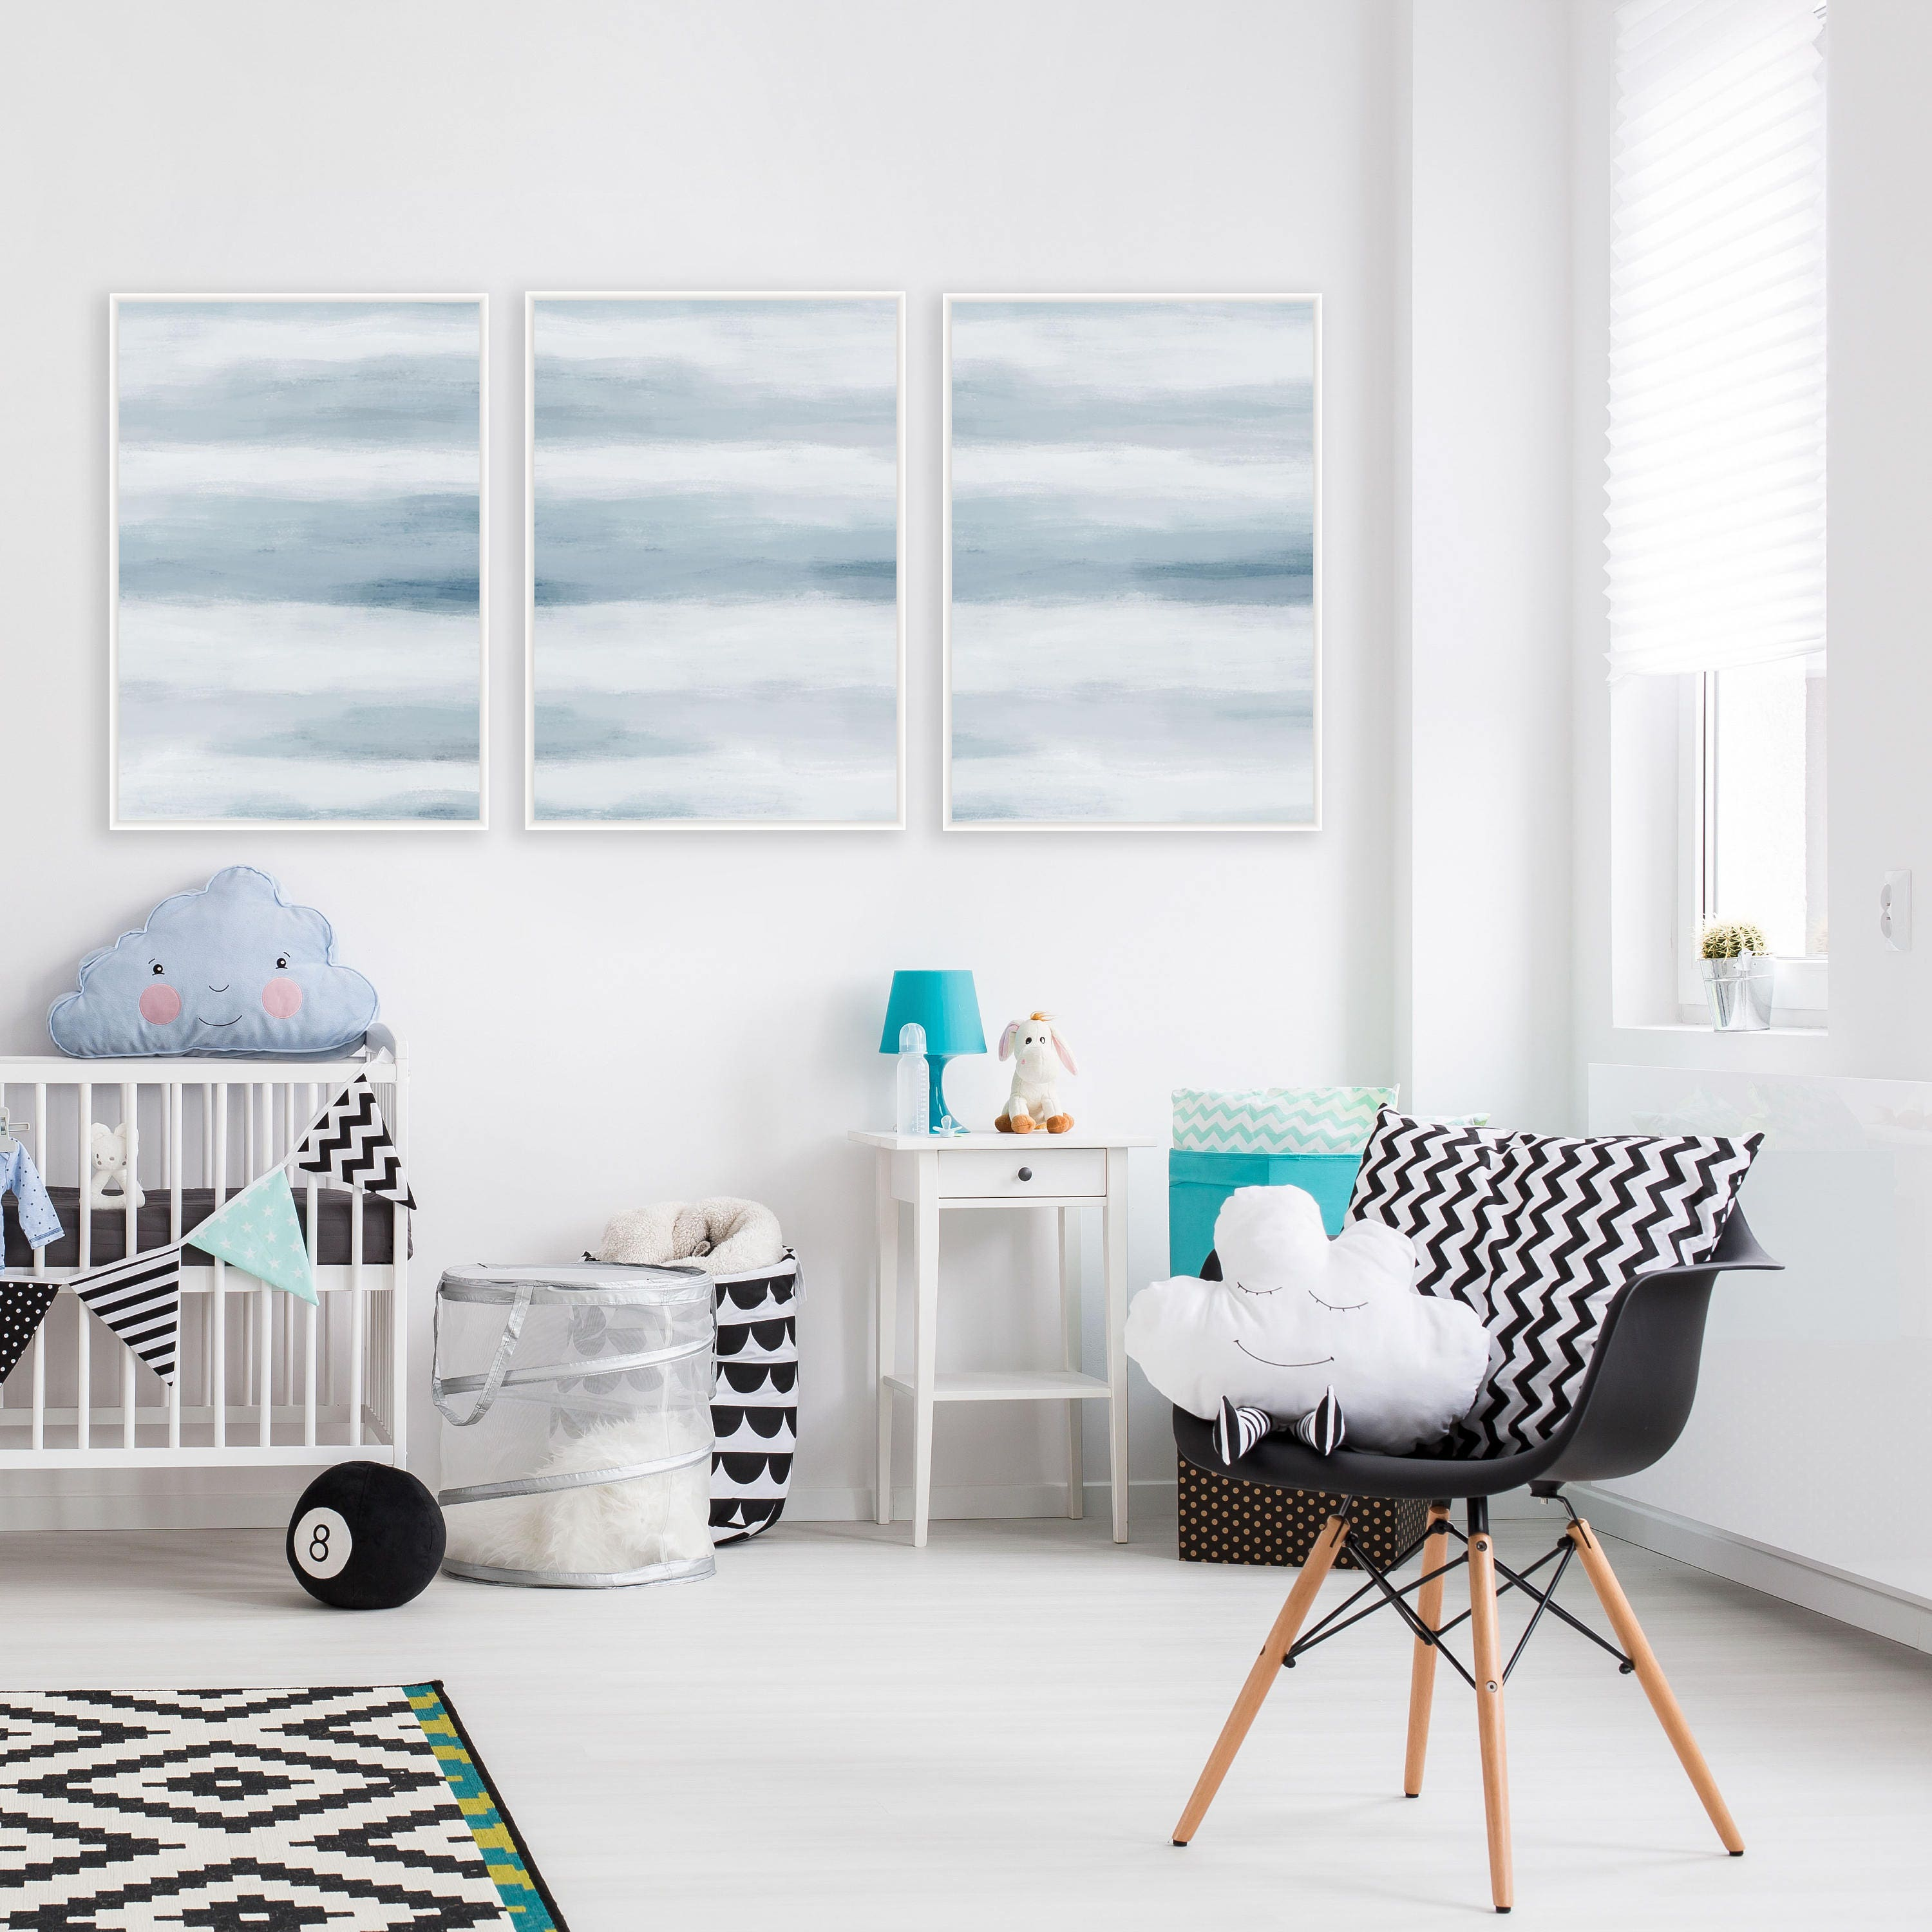 Wall decals choose an option 8x12 in 16x24 in 24x36 in - Gallery Photo Gallery Photo Gallery Photo